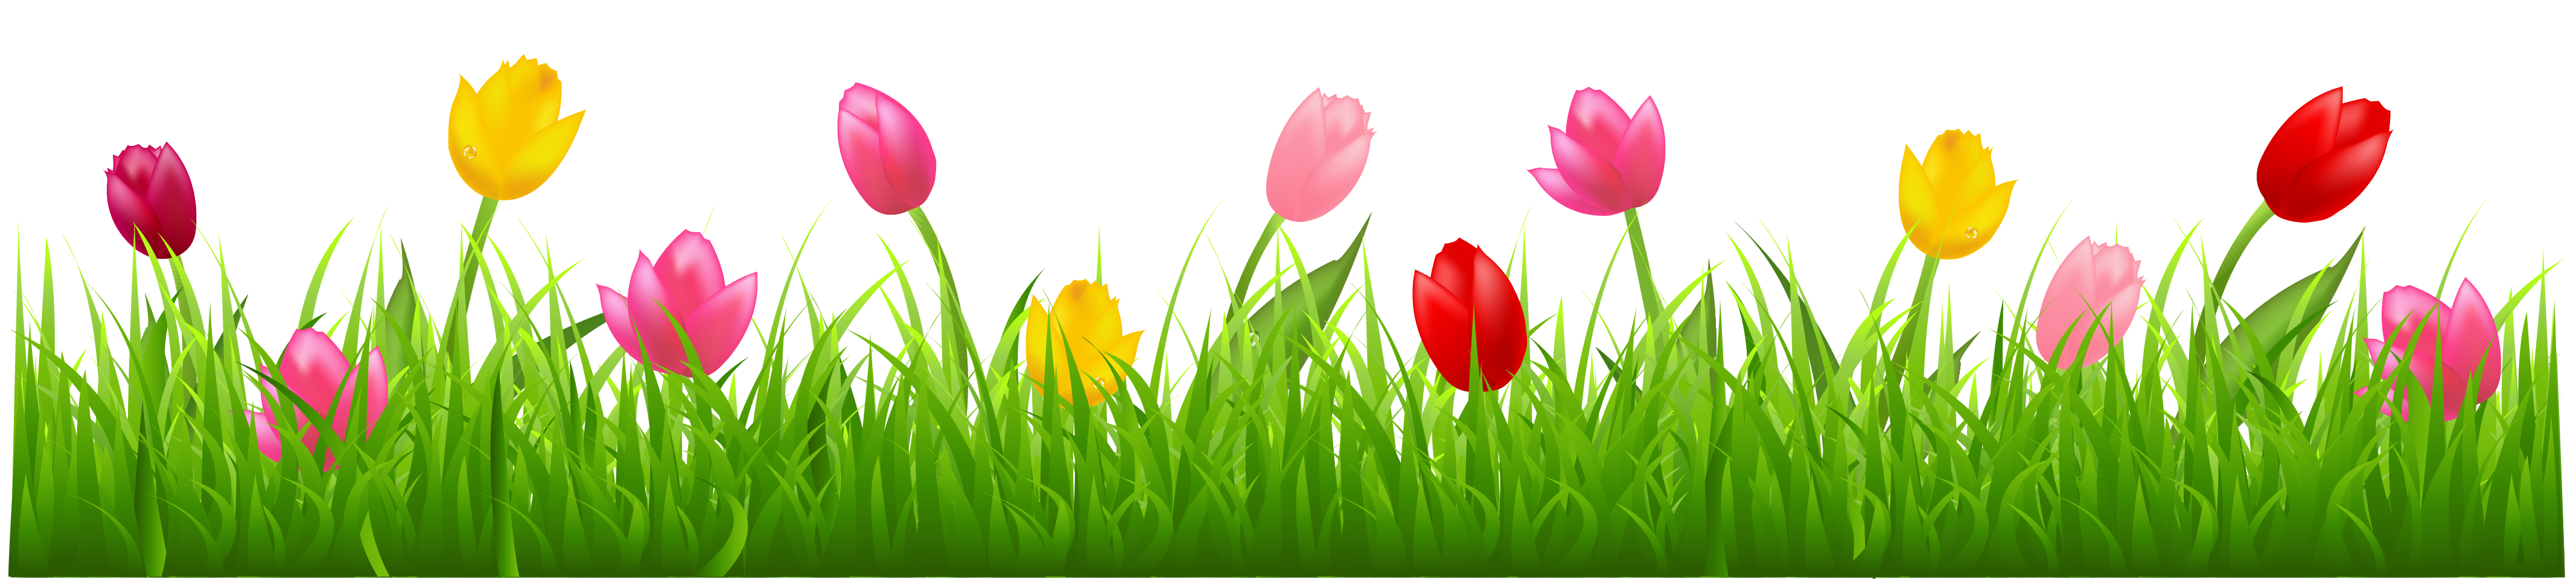 Free Spring Tulips Cliparts, Download Free Clip Art, Free.